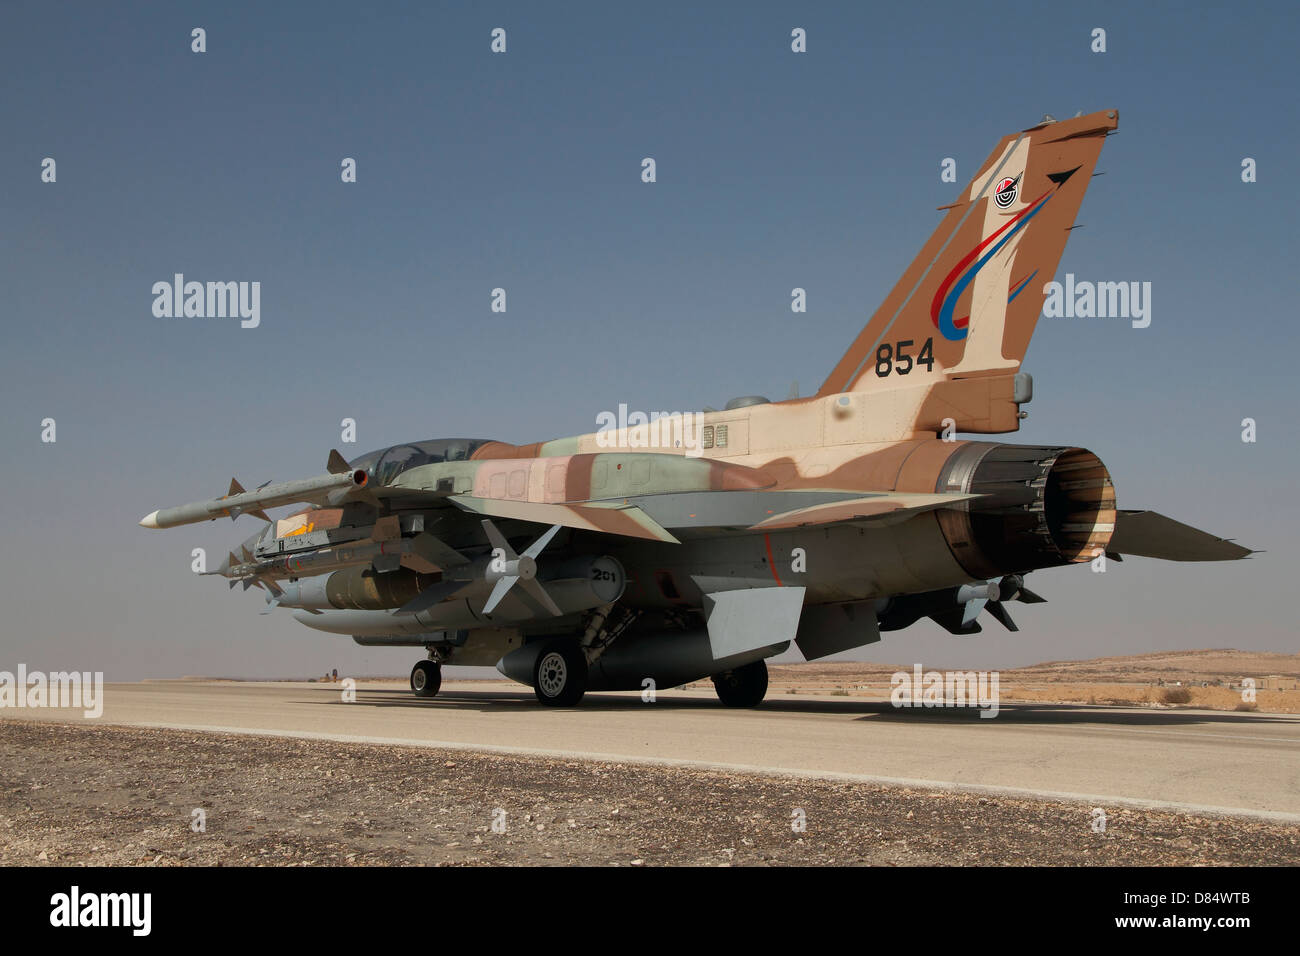 An F-16I Sufa of the Israeli Air Force taxiing on the runway. - Stock Image